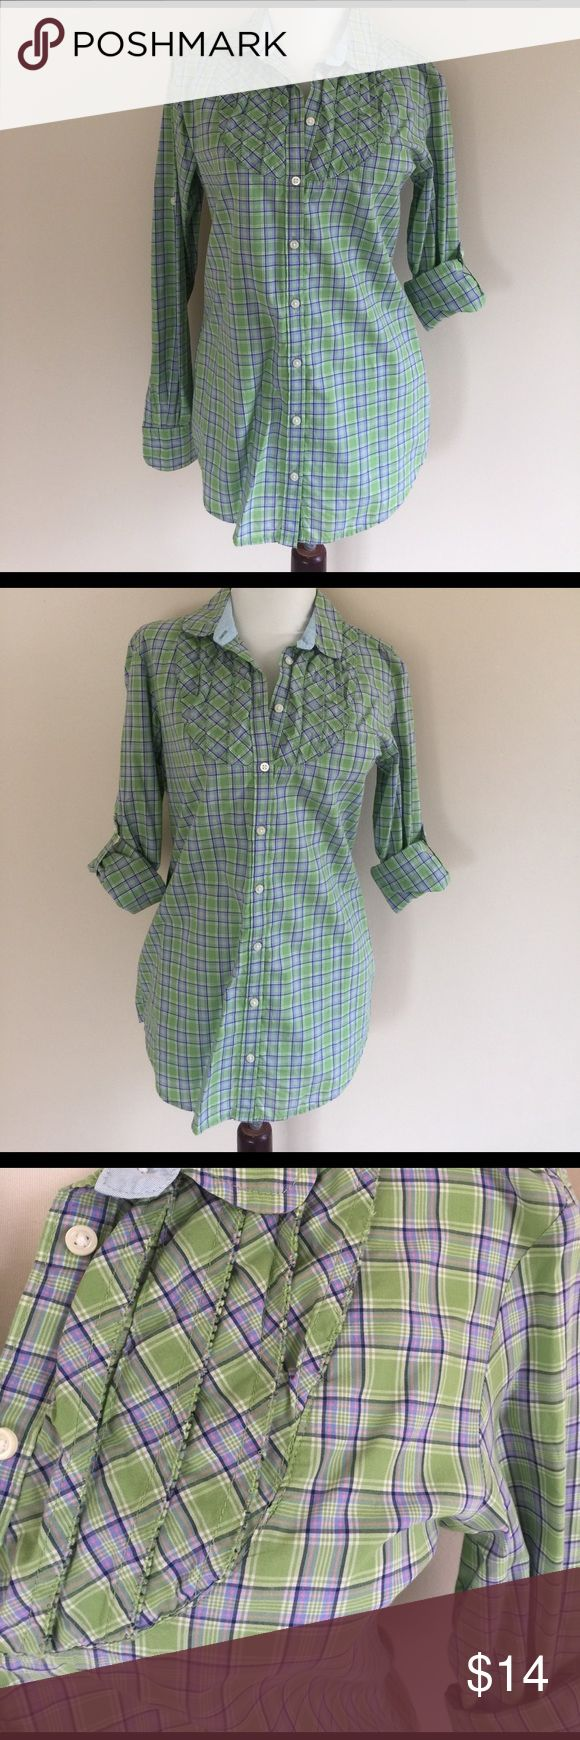 LN Gap printed spring blouse green purple 6 tall These like new Gap plaid printed blouse is a hard-to-find size 6 tall. Looks great with shorts, jeans, pants or a skirt. Fresh from the dry cleaner. Nice and crisp. Sleeves can be worn buttoned up (see photo) or down. Long and lean. Pet-free, smoke-free home. GAP Tops Blouses